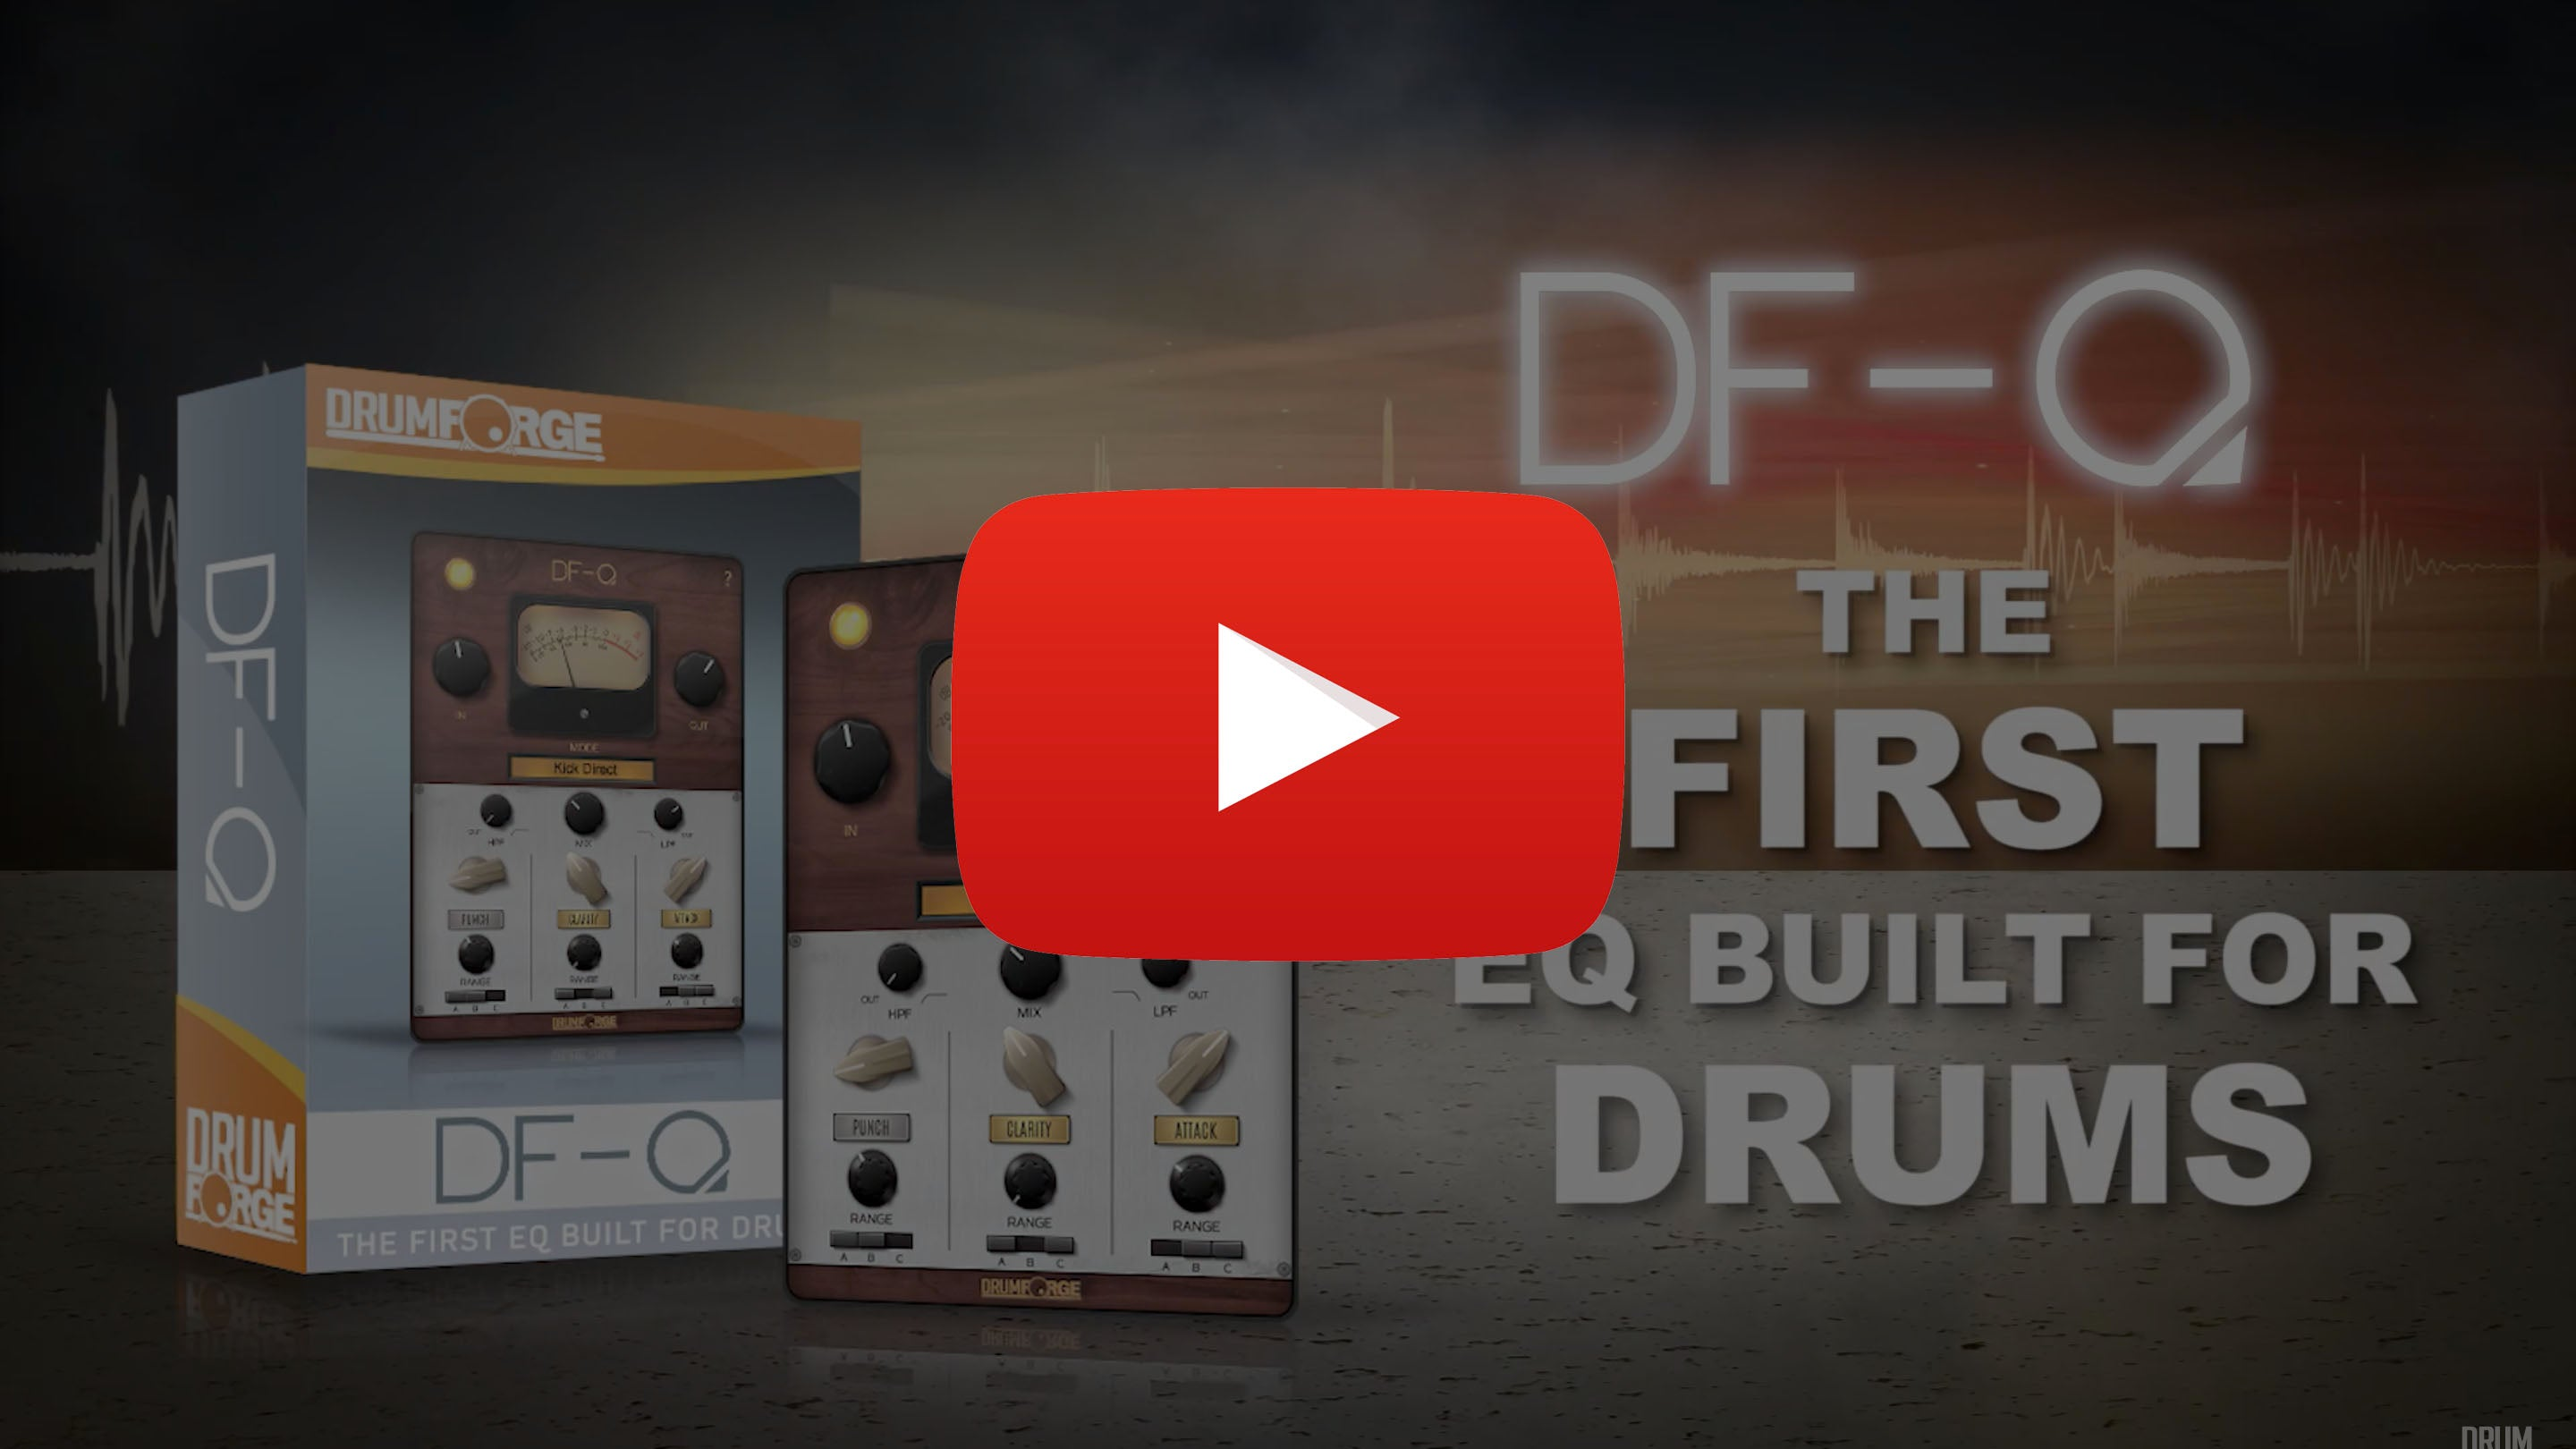 The FIRST EQ built for Drums.